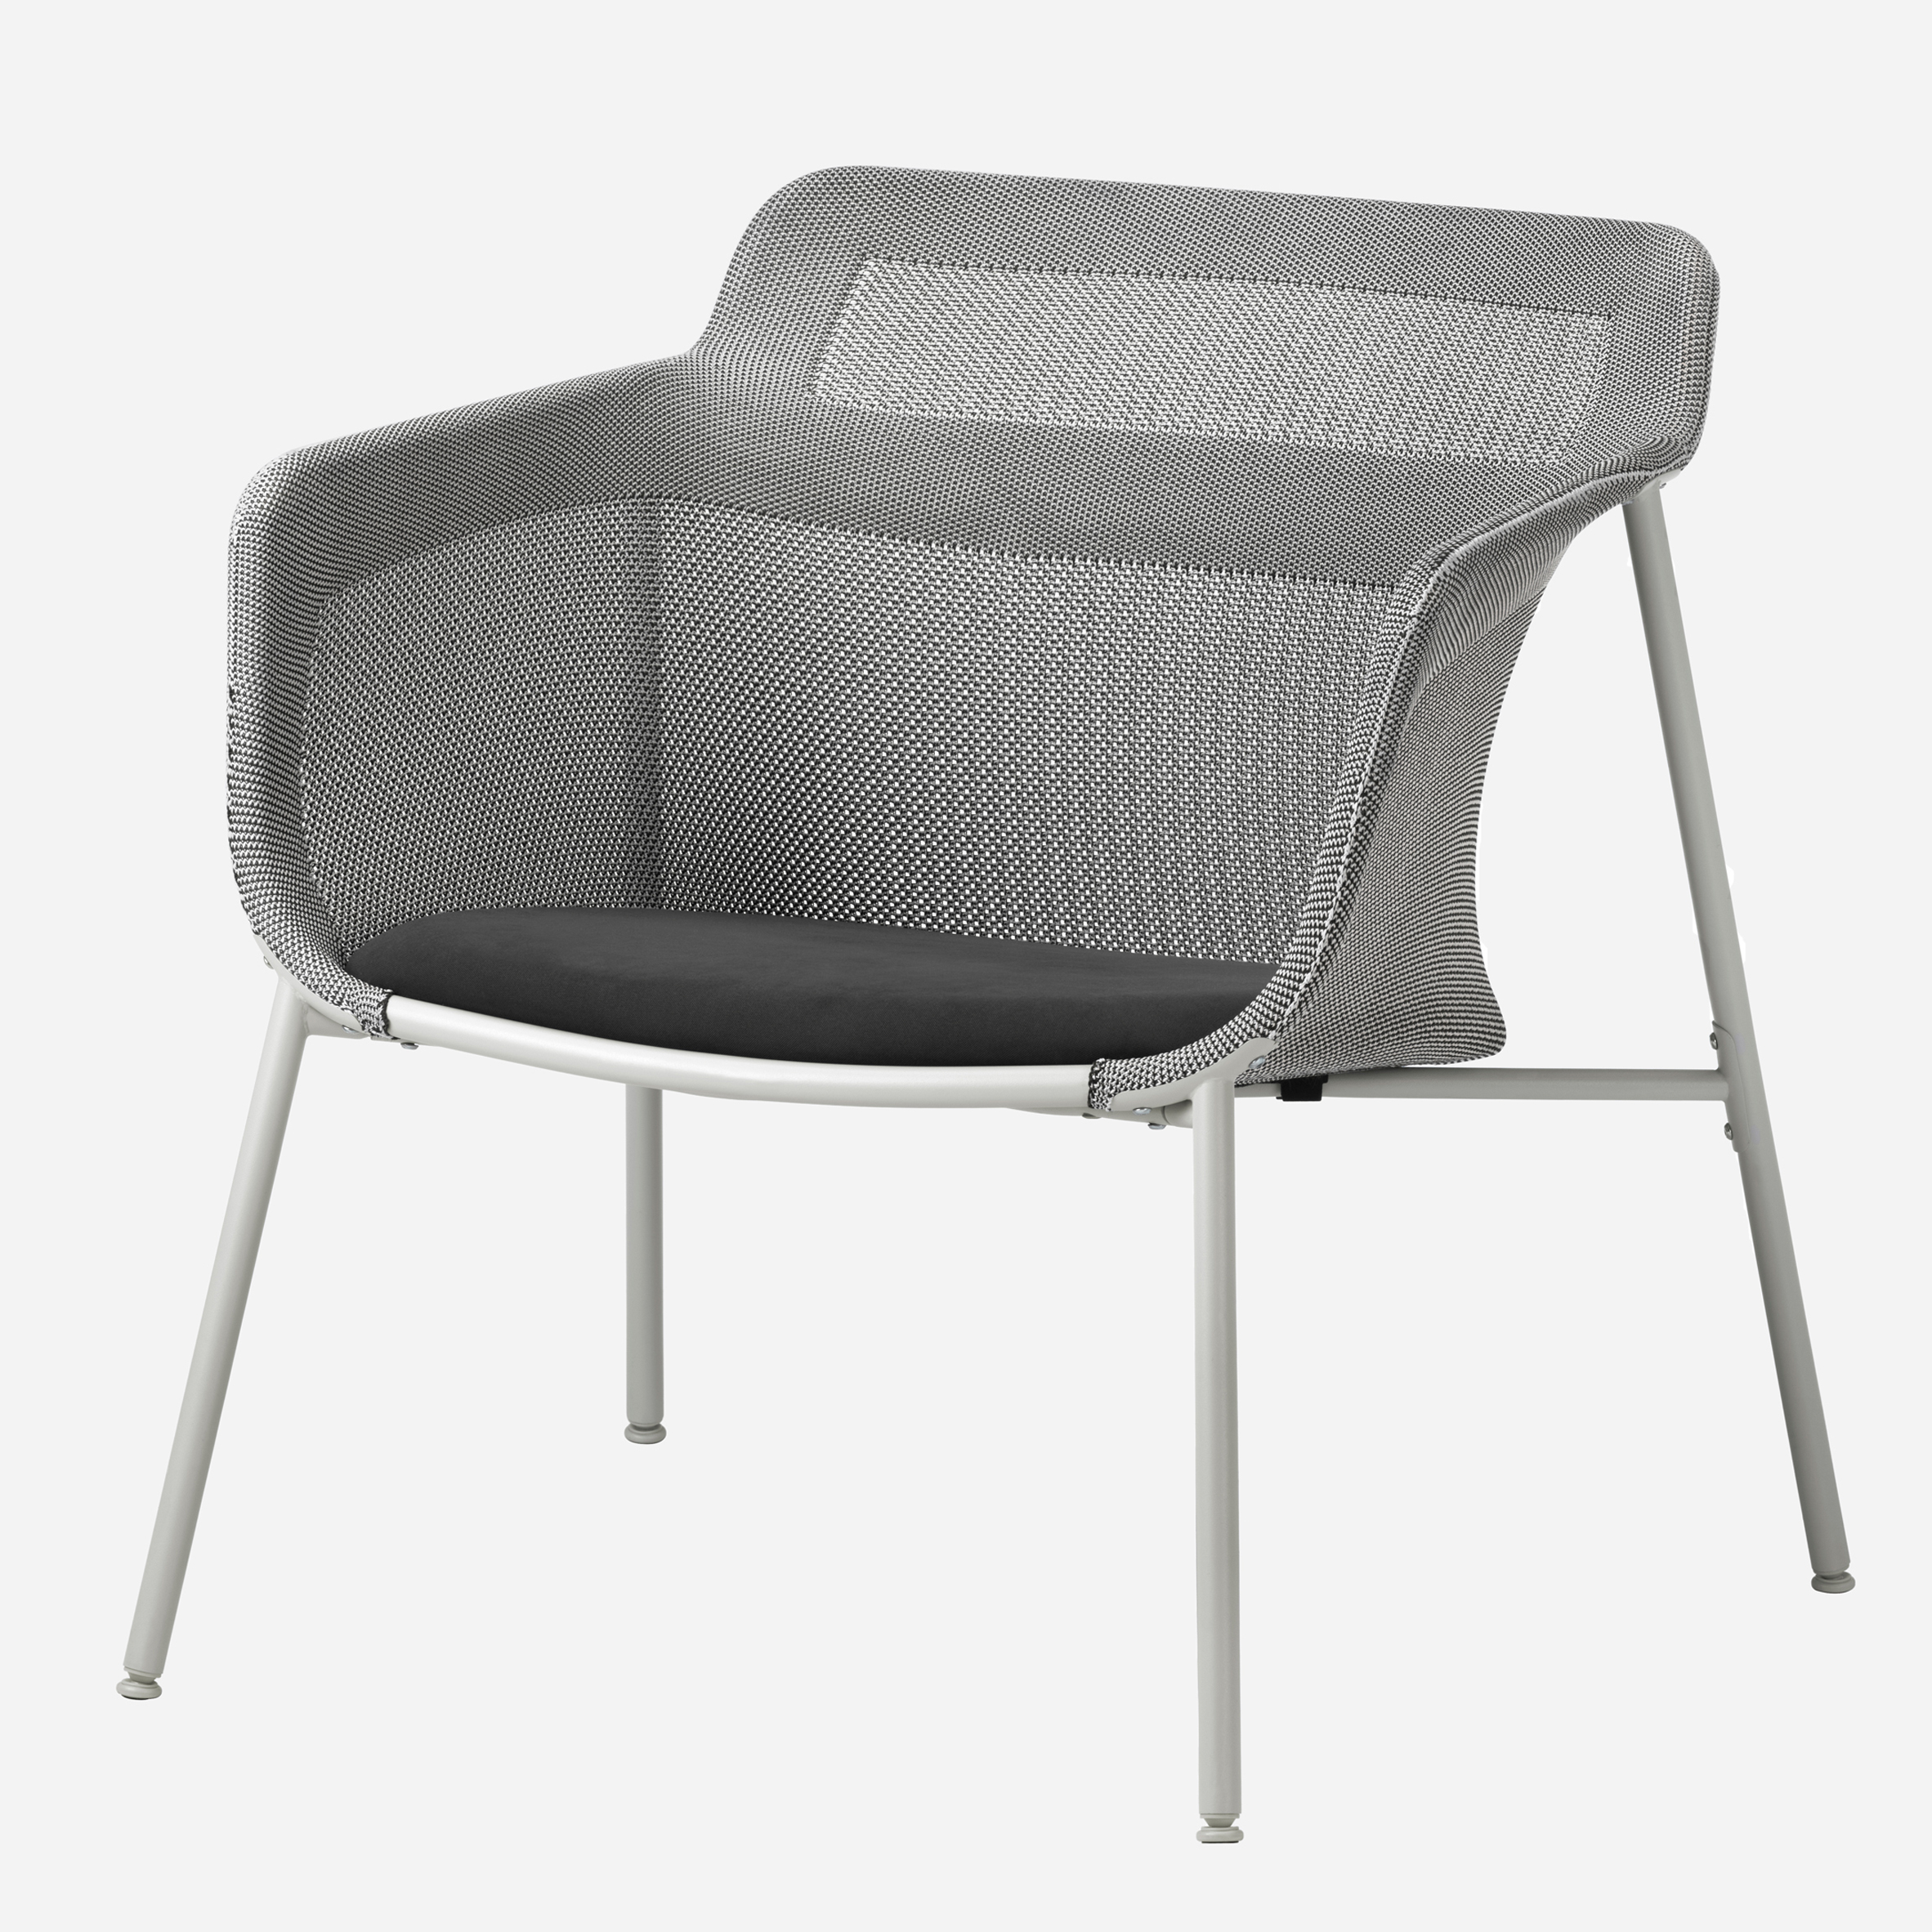 Exceptionnel 3D Knitted Furniture Arrives At IKEA